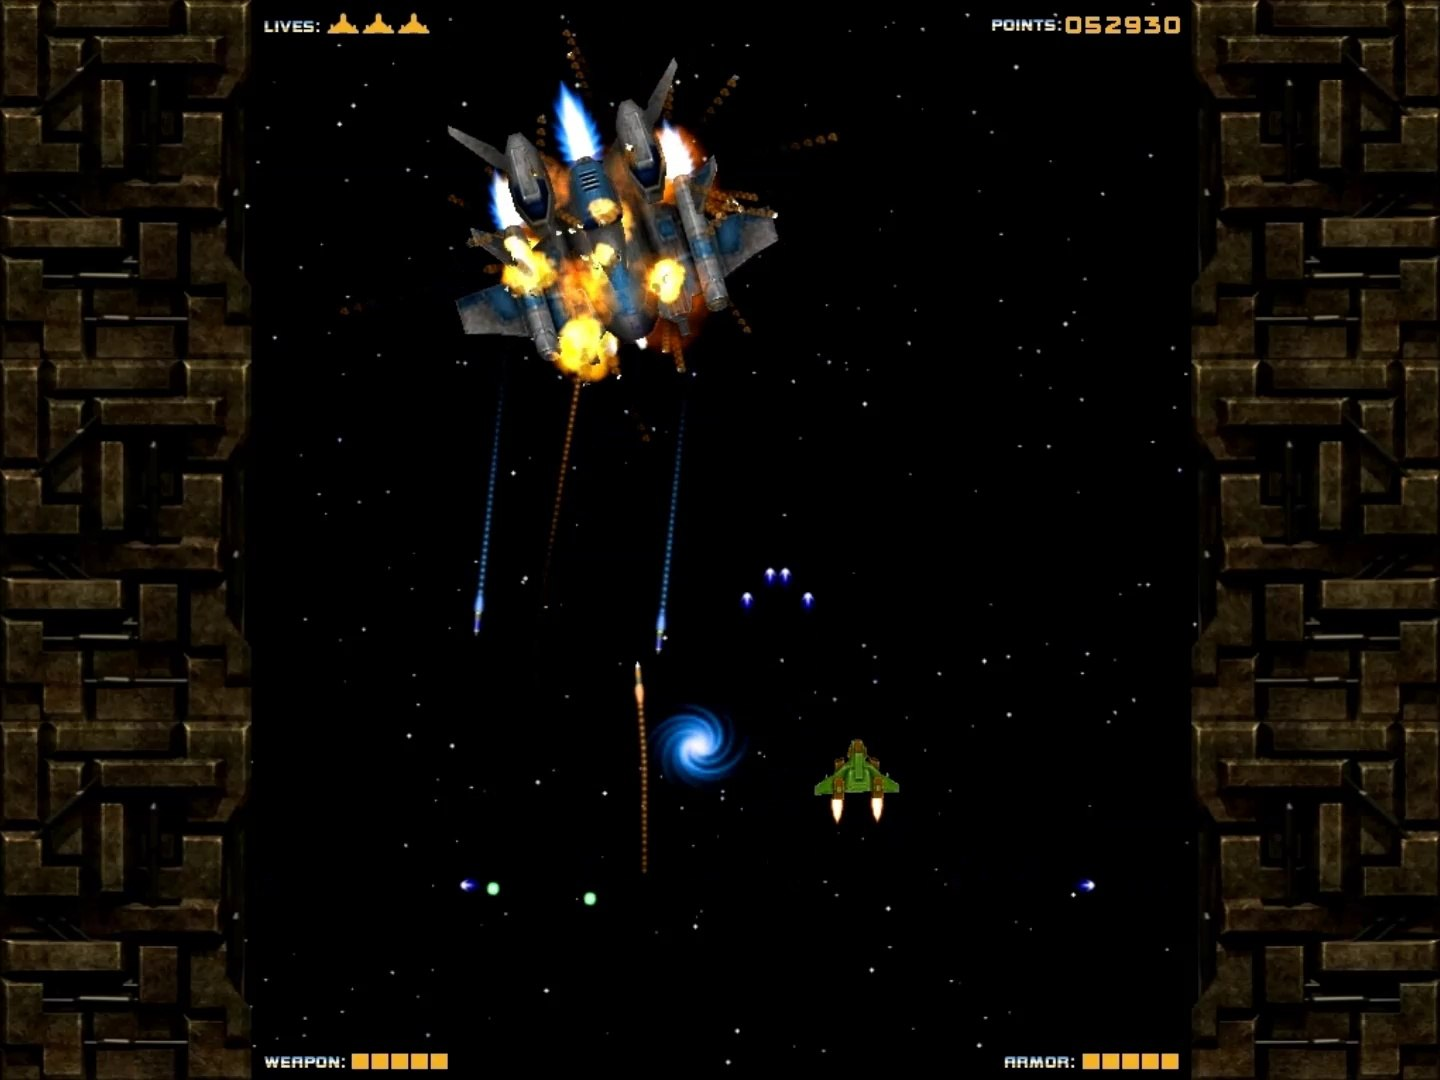 Last Space Fighter - free 3D space shooter PC game